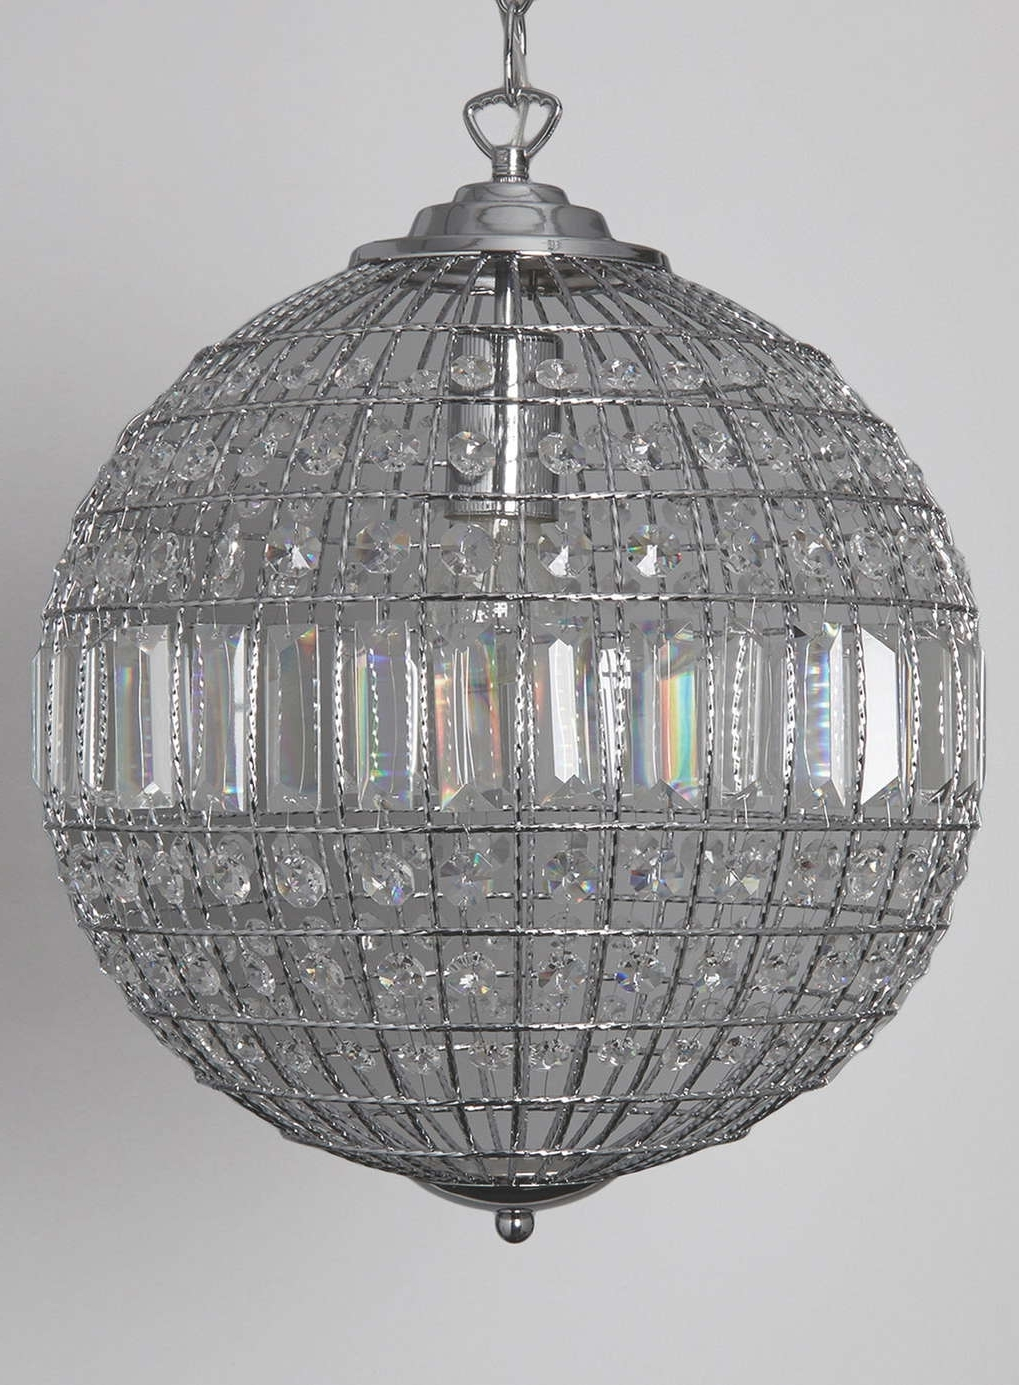 Popular Light : Lovely Crystal Hanging Chandelier Residence Decorating Intended For Crystal Globe Chandelier (View 14 of 15)